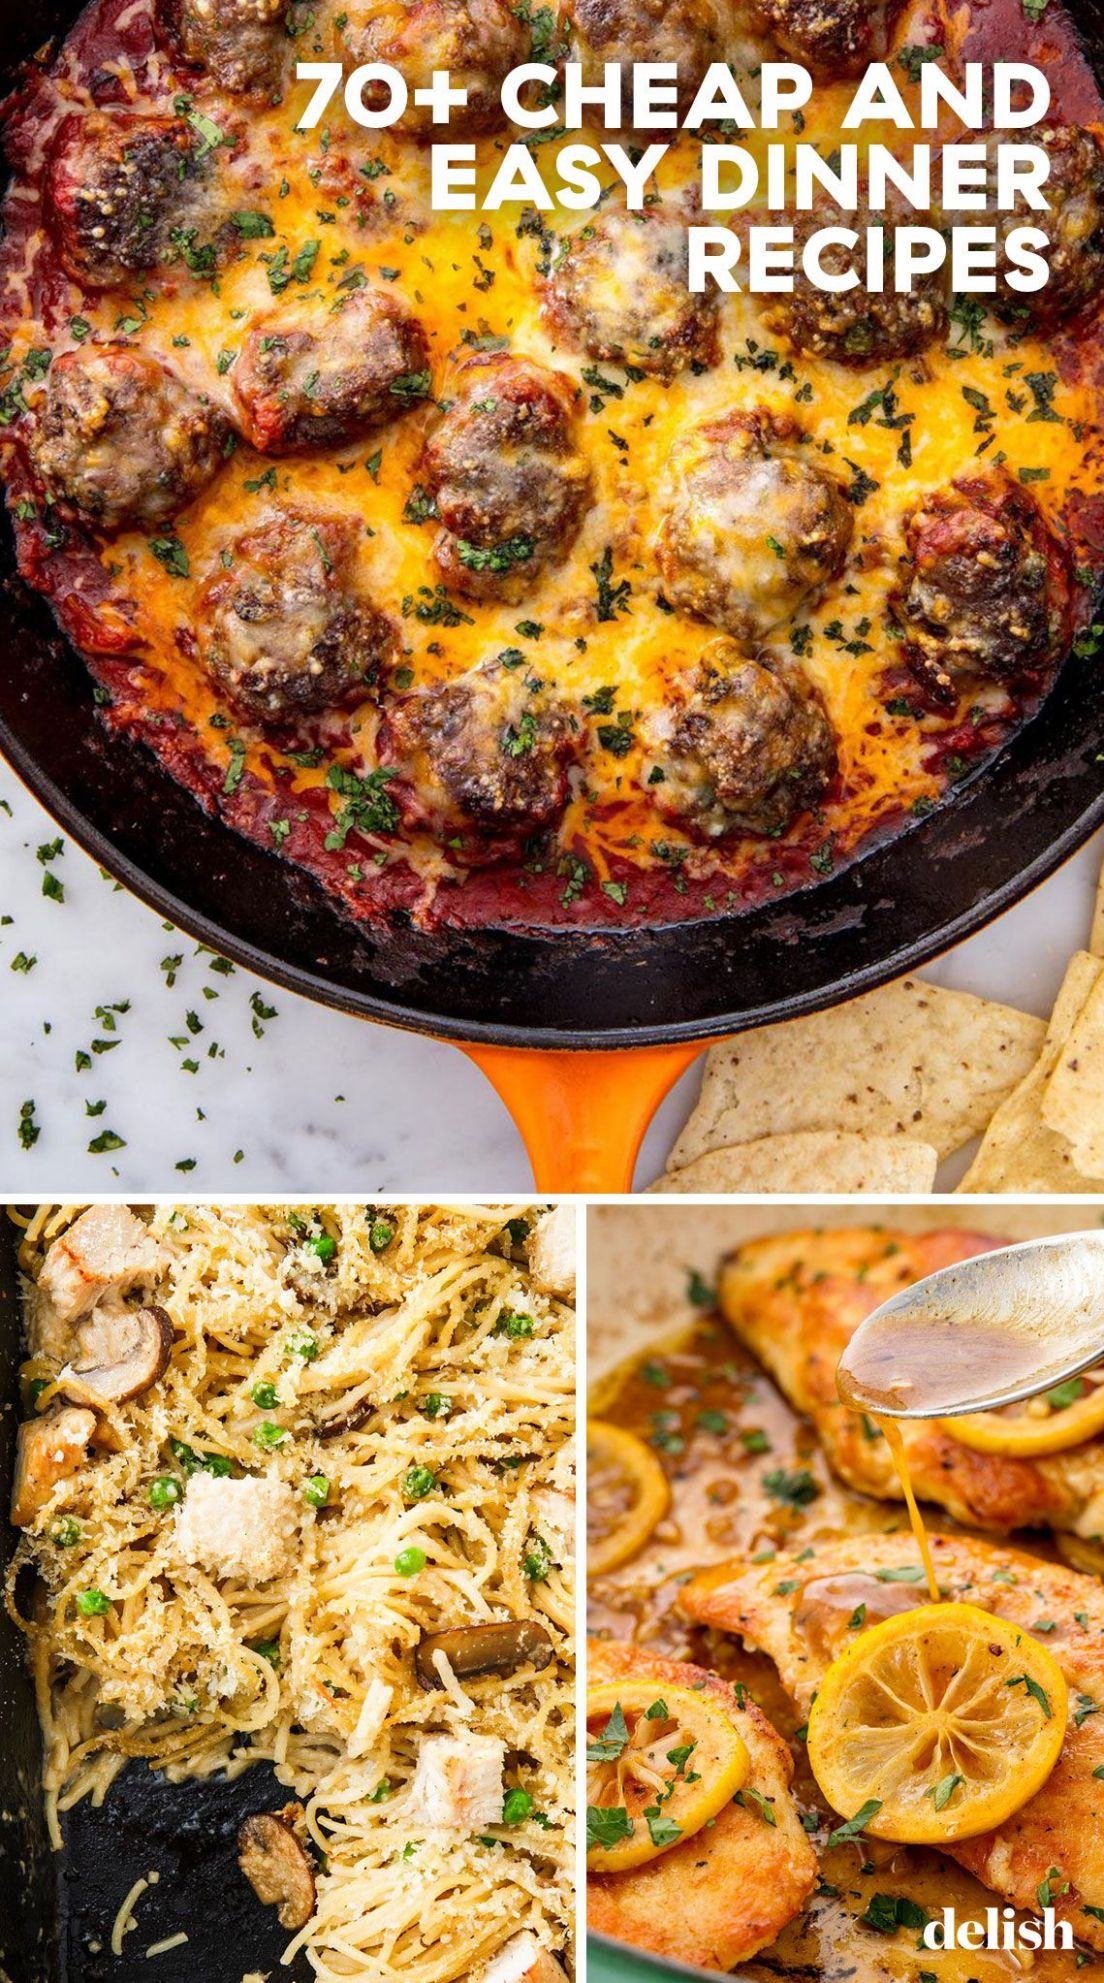 10+ Easy Cheap Dinner Recipes - Inexpensive Dinner Ideas